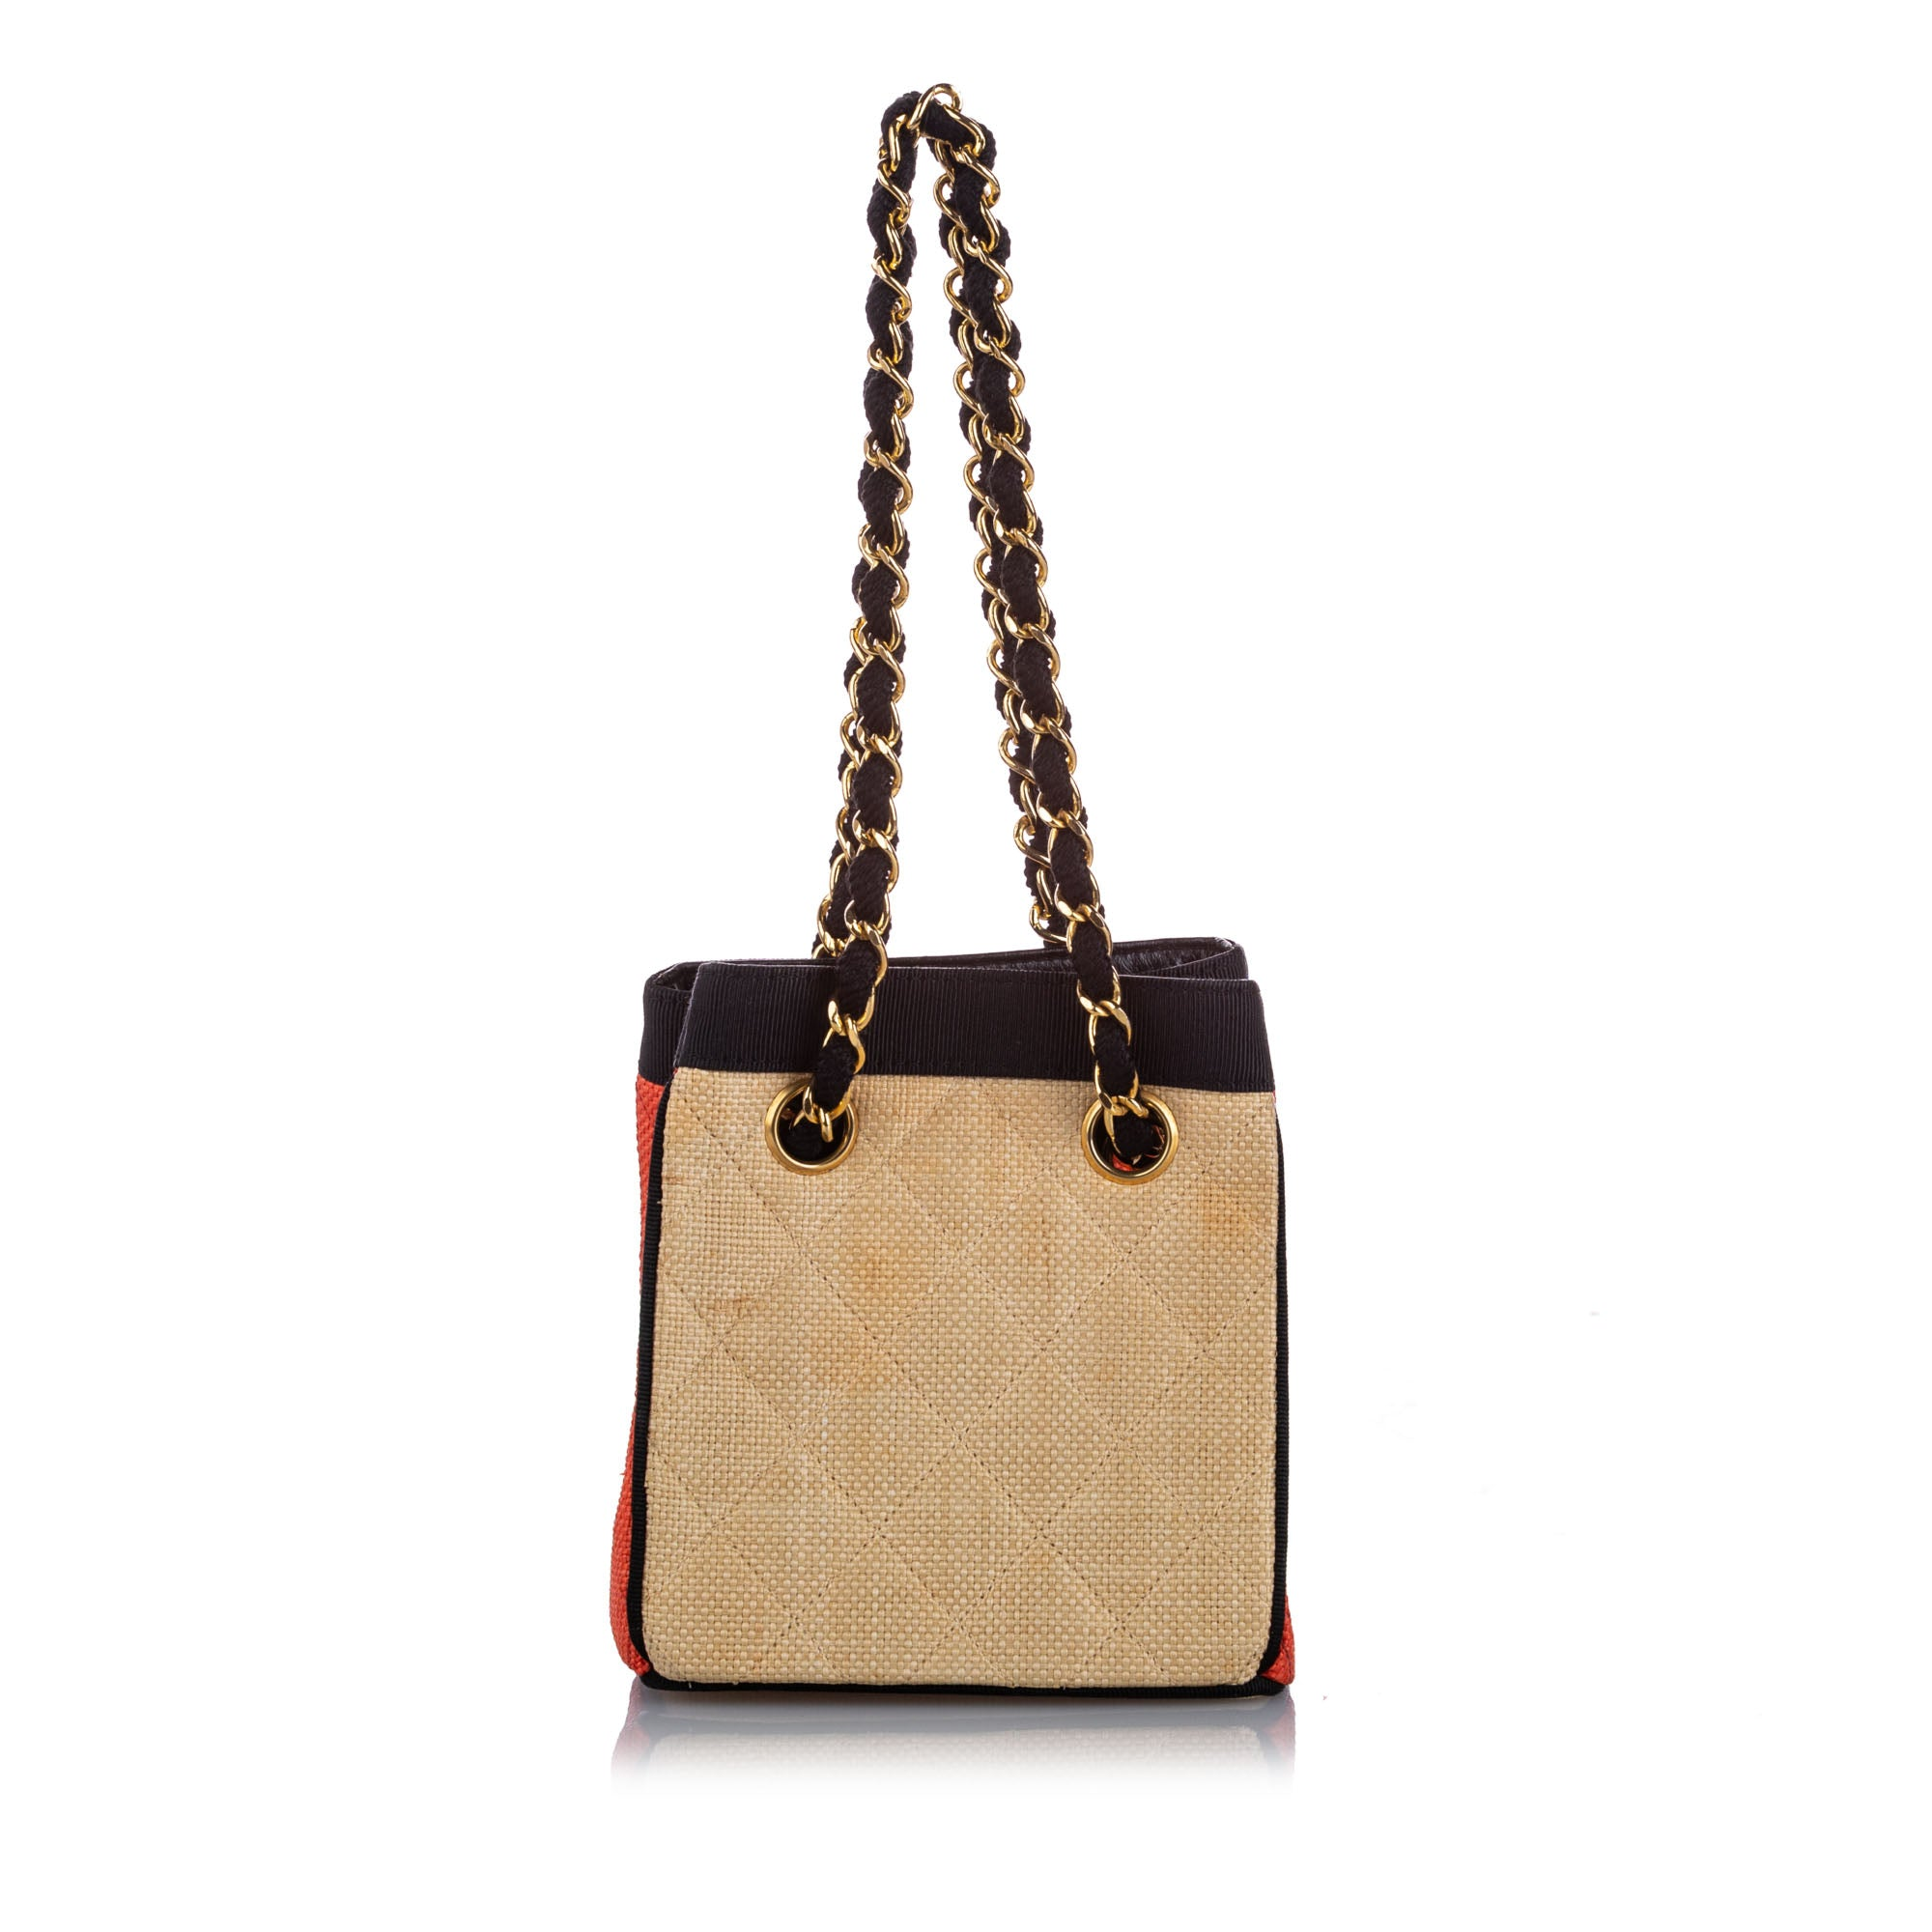 Chanel Brown Classic Canvas Shoulder Bag